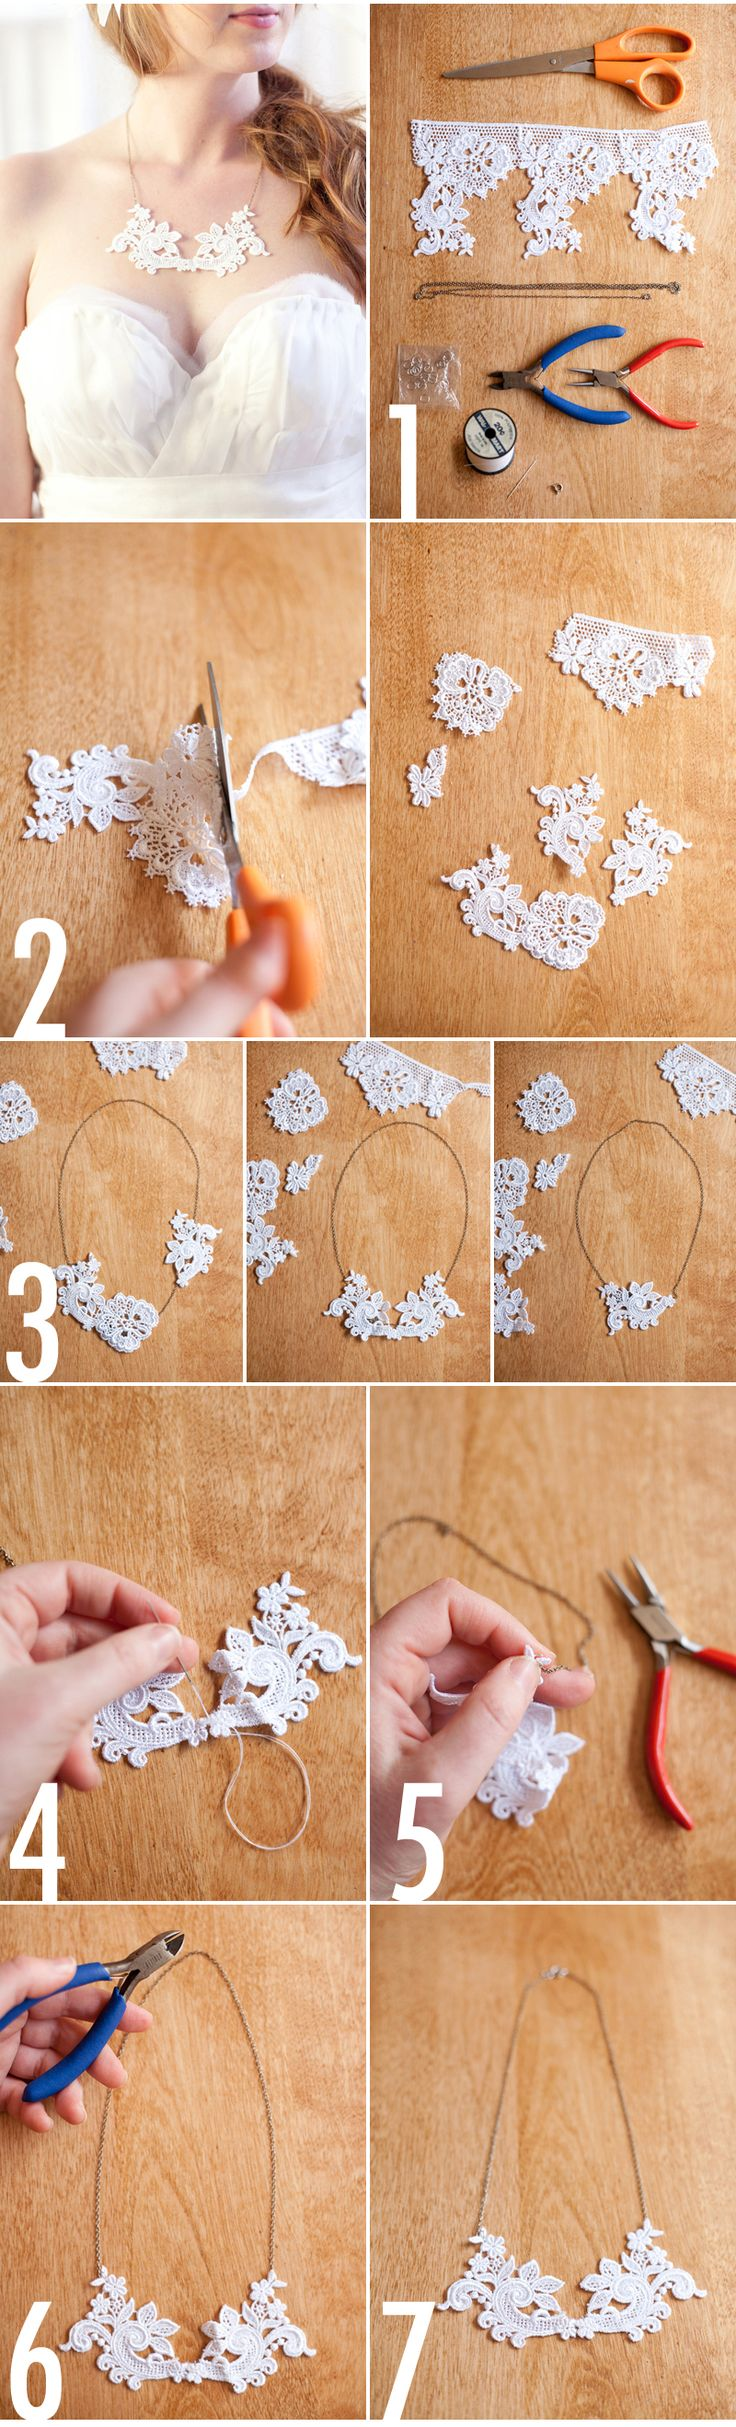 DIY Jewelry | NECKLACE :: DIY Lace Doily Necklace Tutorial | #doilies #lace